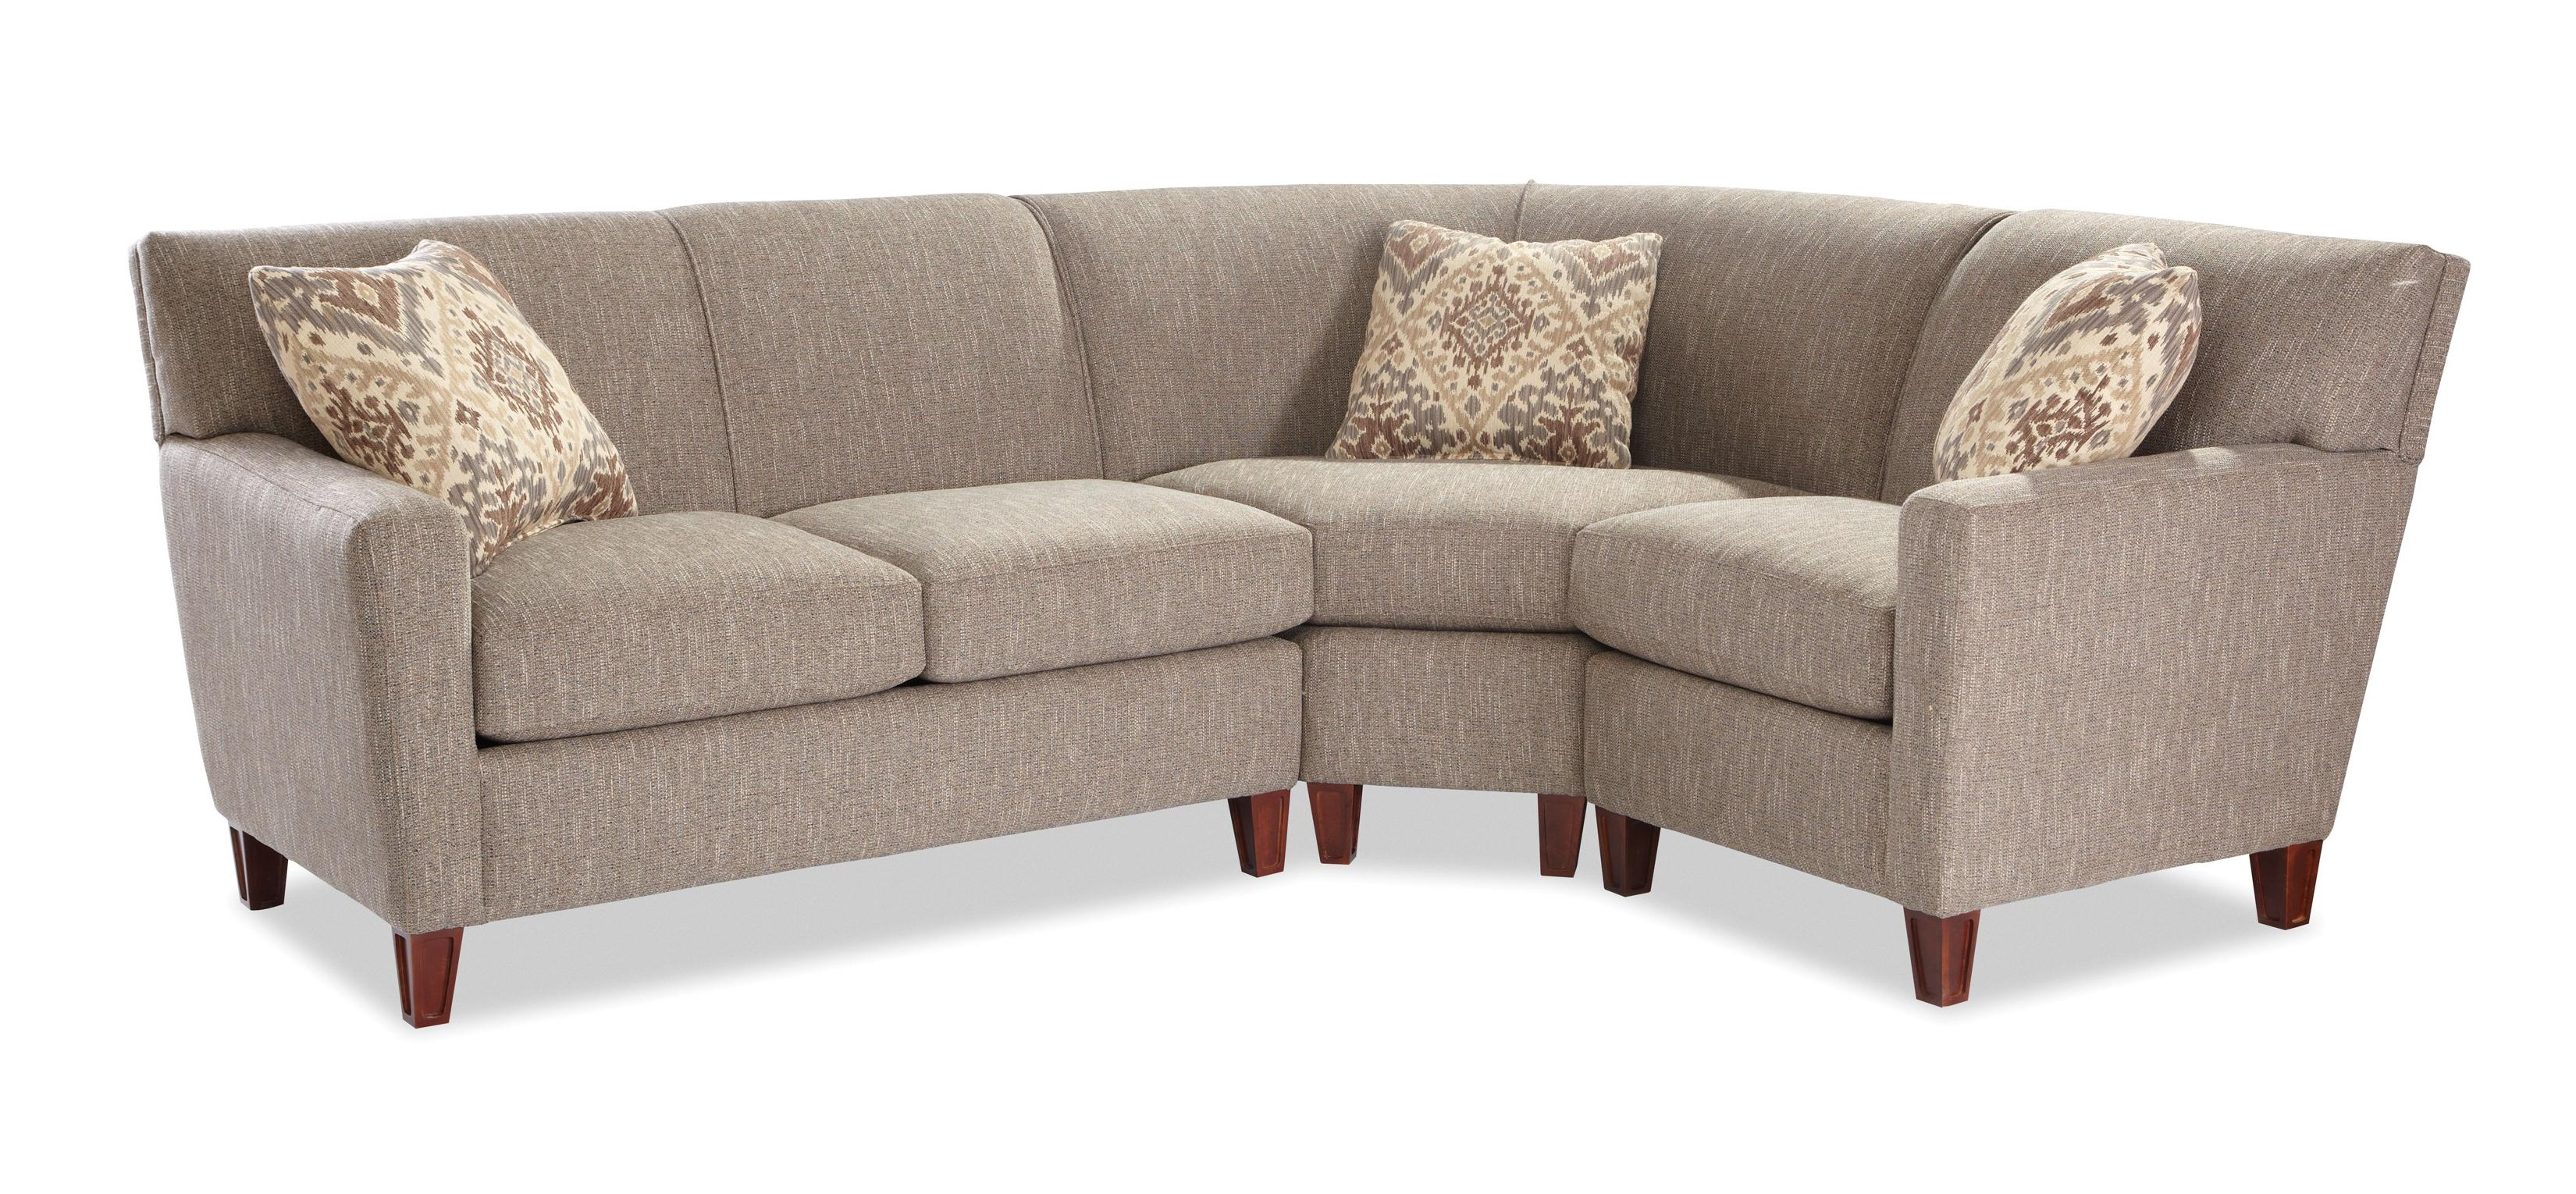 Craftmaster 7864 three piece sectional sofa with laf for Sectional sofa names